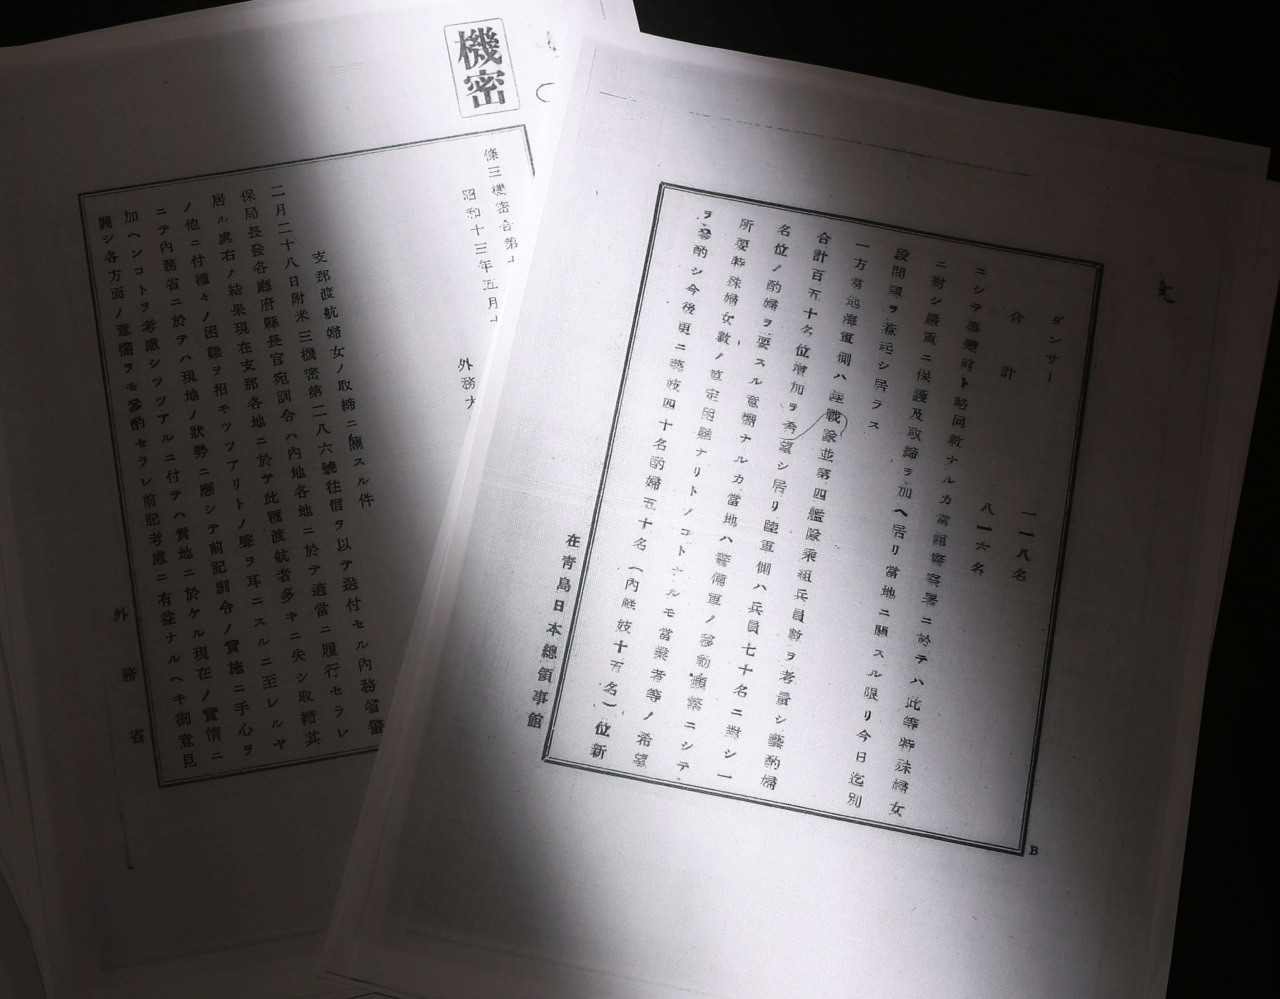 Documents collected by Japan's Cabinet Secretariat between April 2017 and March 2019 show the Japanese army asked that there be one comfort woman for every 70 soldiers, Kyodo reported. (Yonhap)